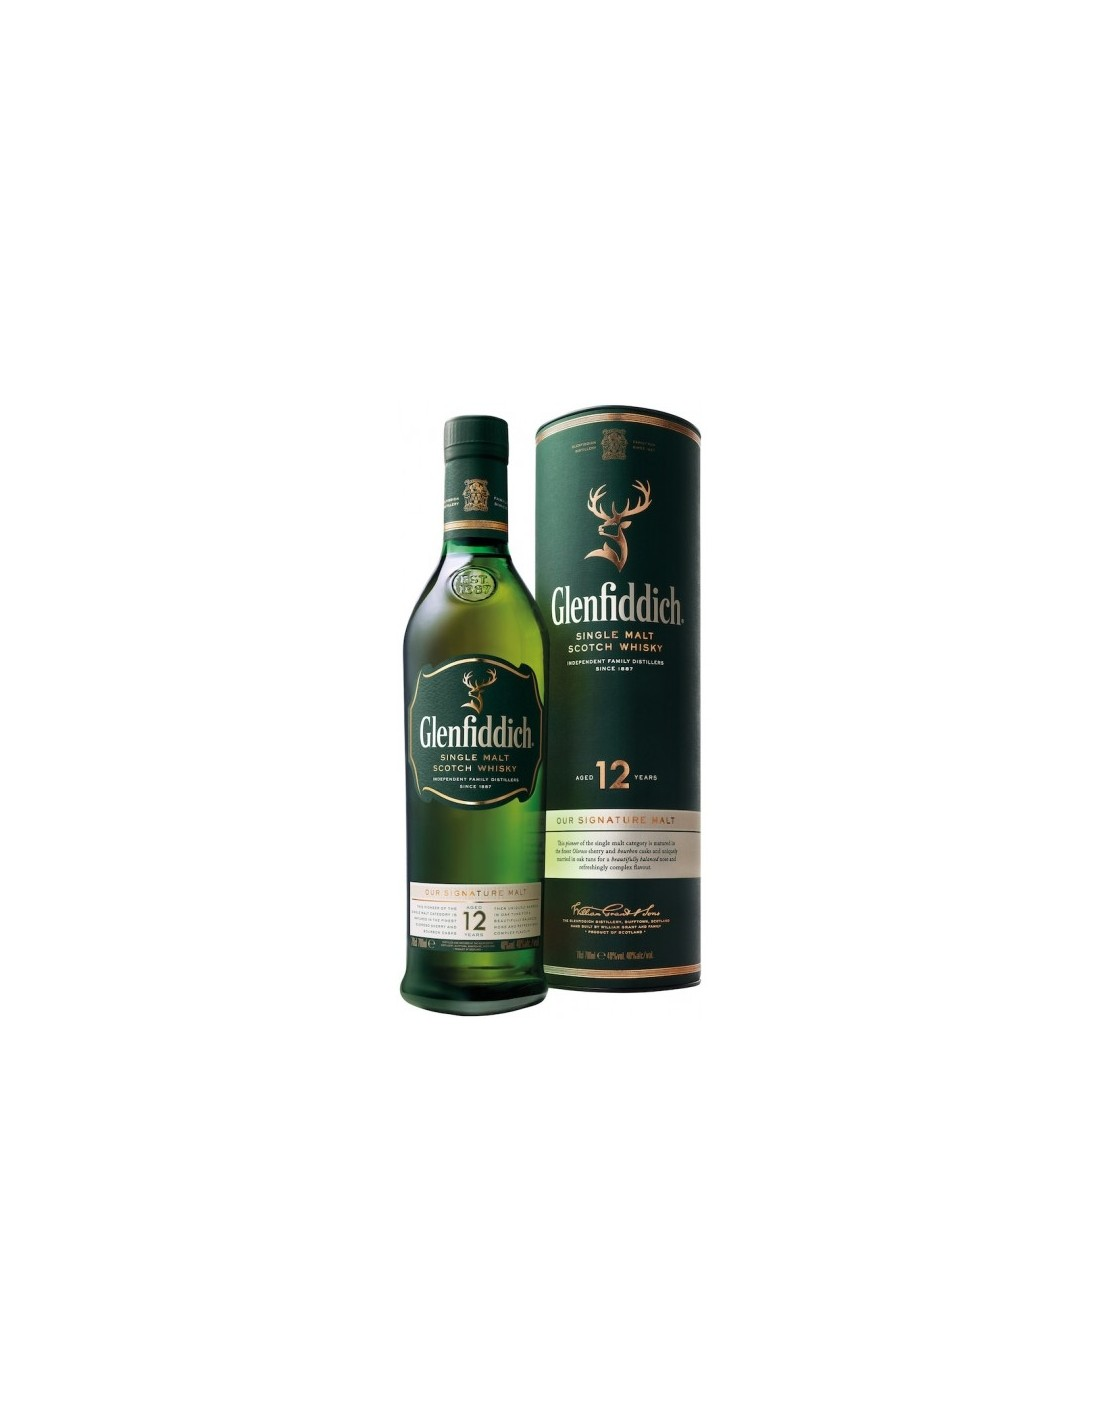 Whisky Single Malt Glenfiddich, 12 ani, 40% alc., 0.7L, Scotia